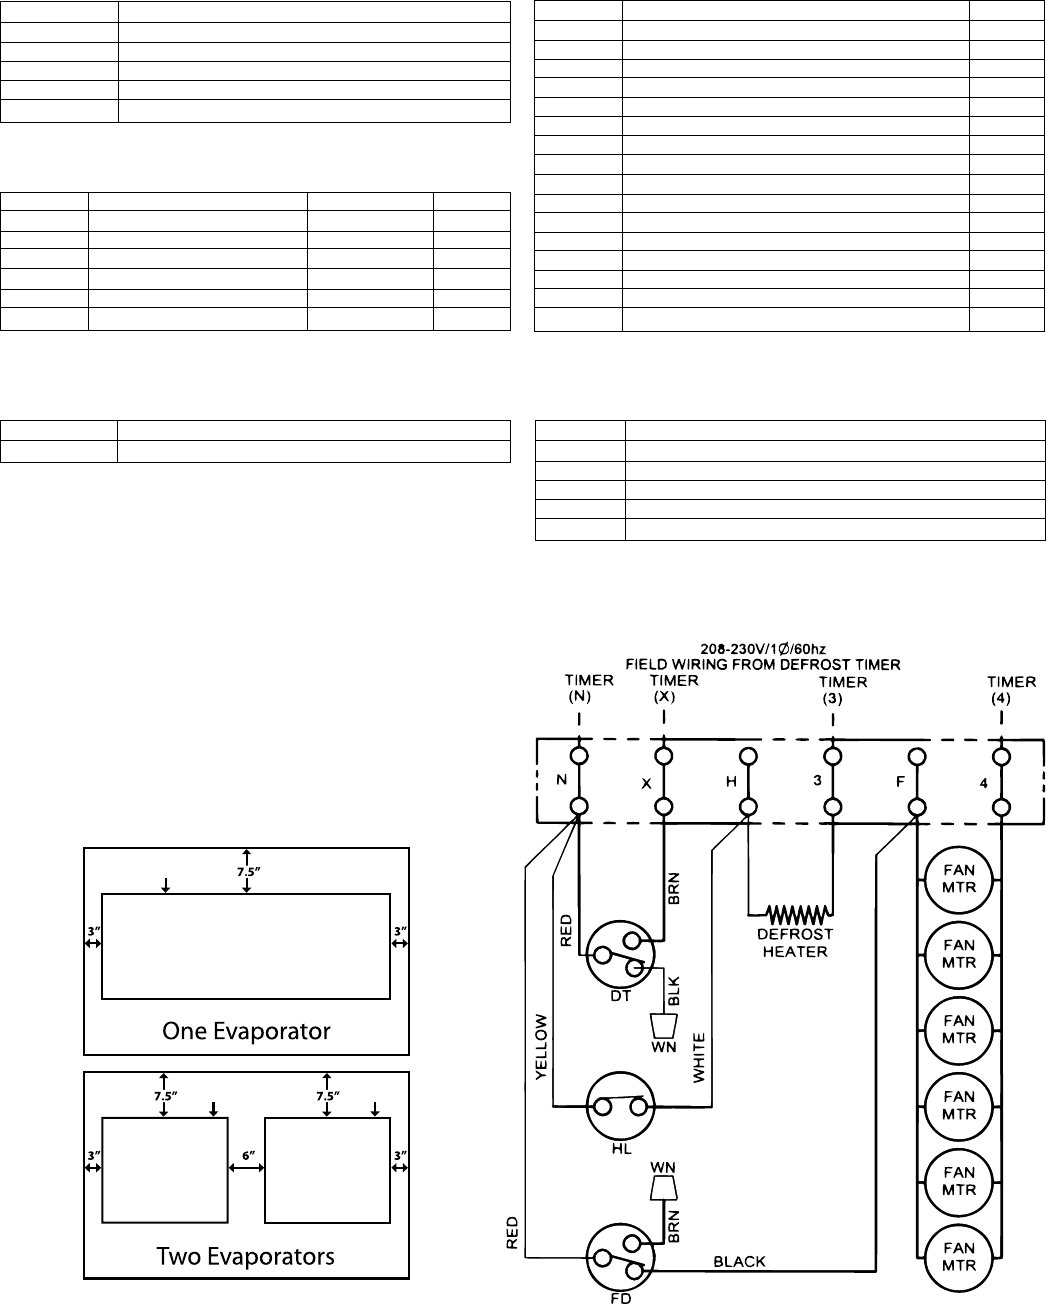 2f271777 ed48 431c affa 693c84f3fb6b bgb page 11 of heatcraft refrigeration products humidifier 25005601 heatcraft wiring diagram at mifinder.co